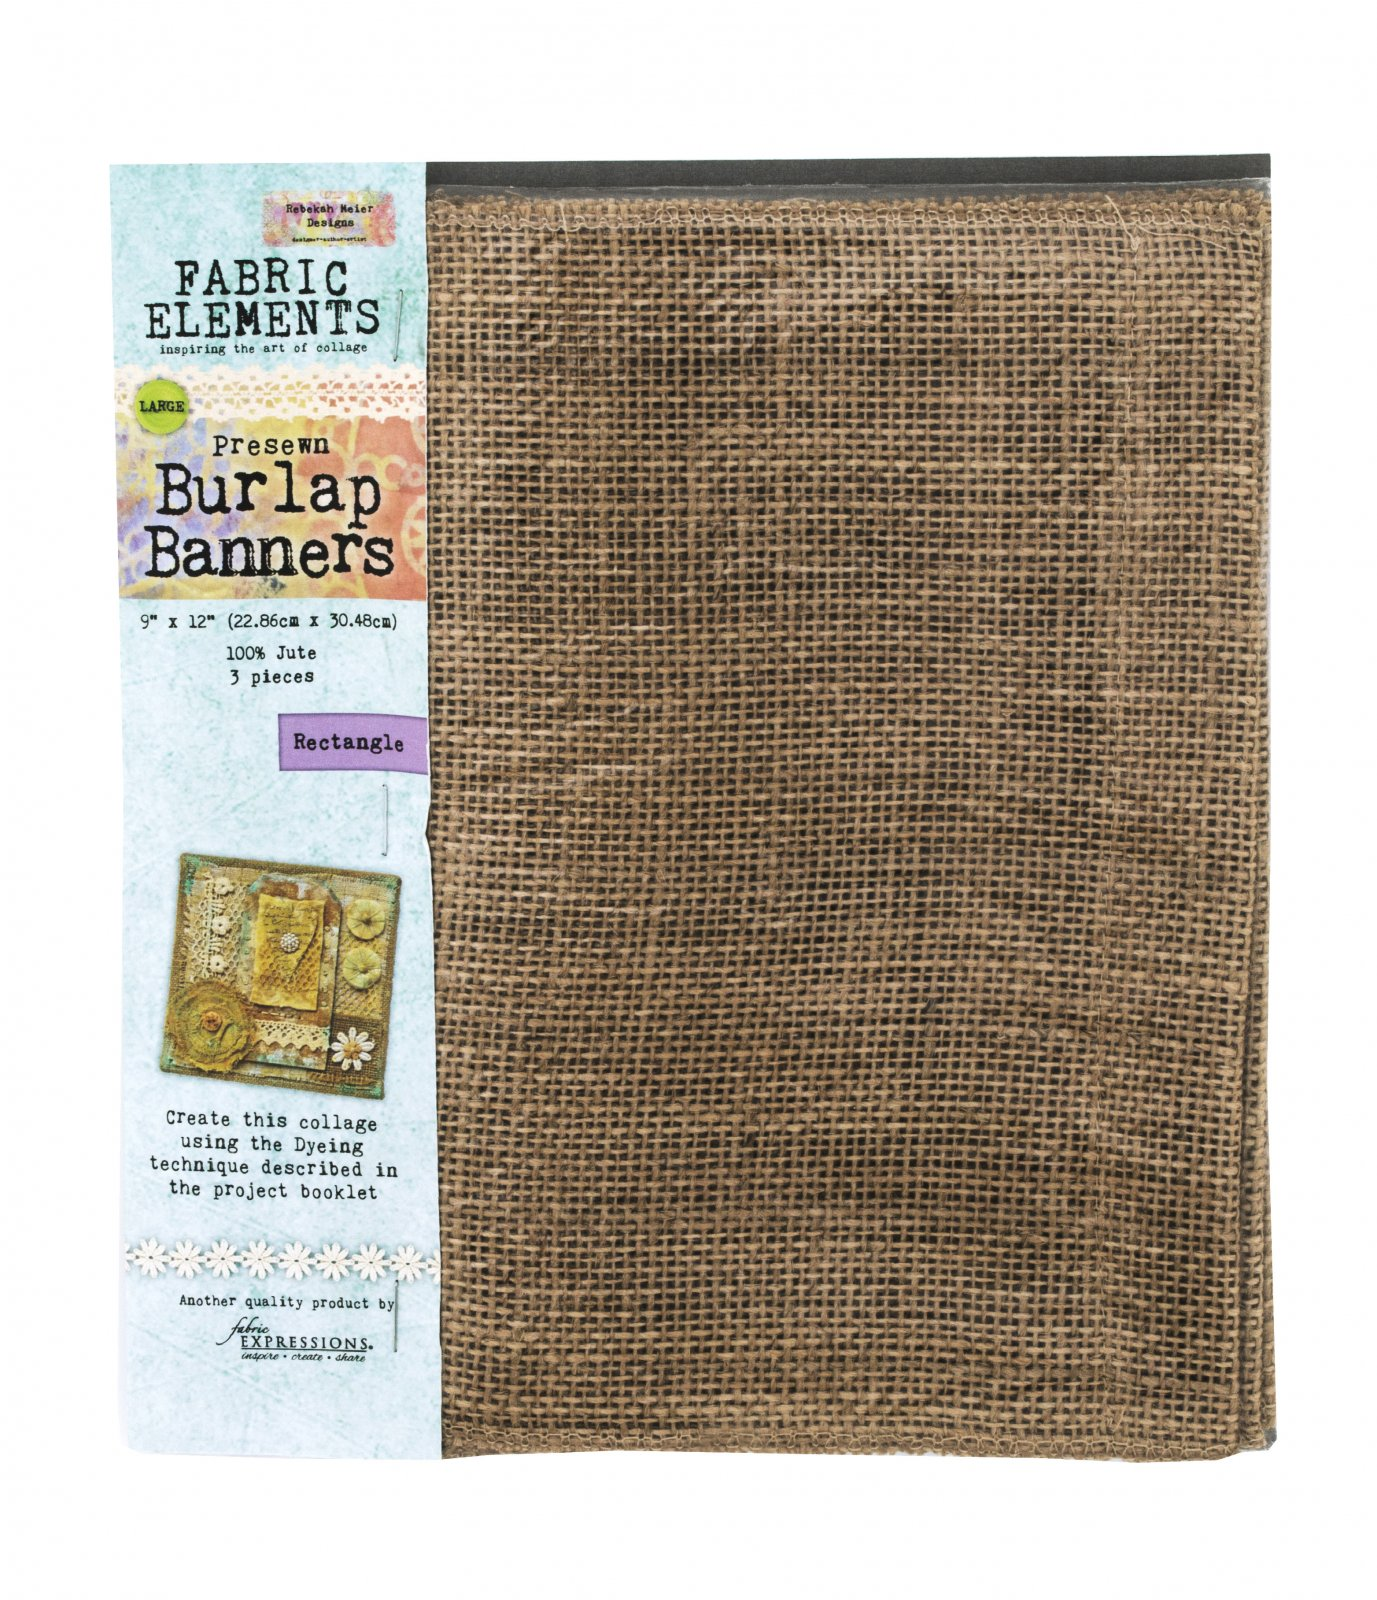 Fabric Elements Burlap Banners